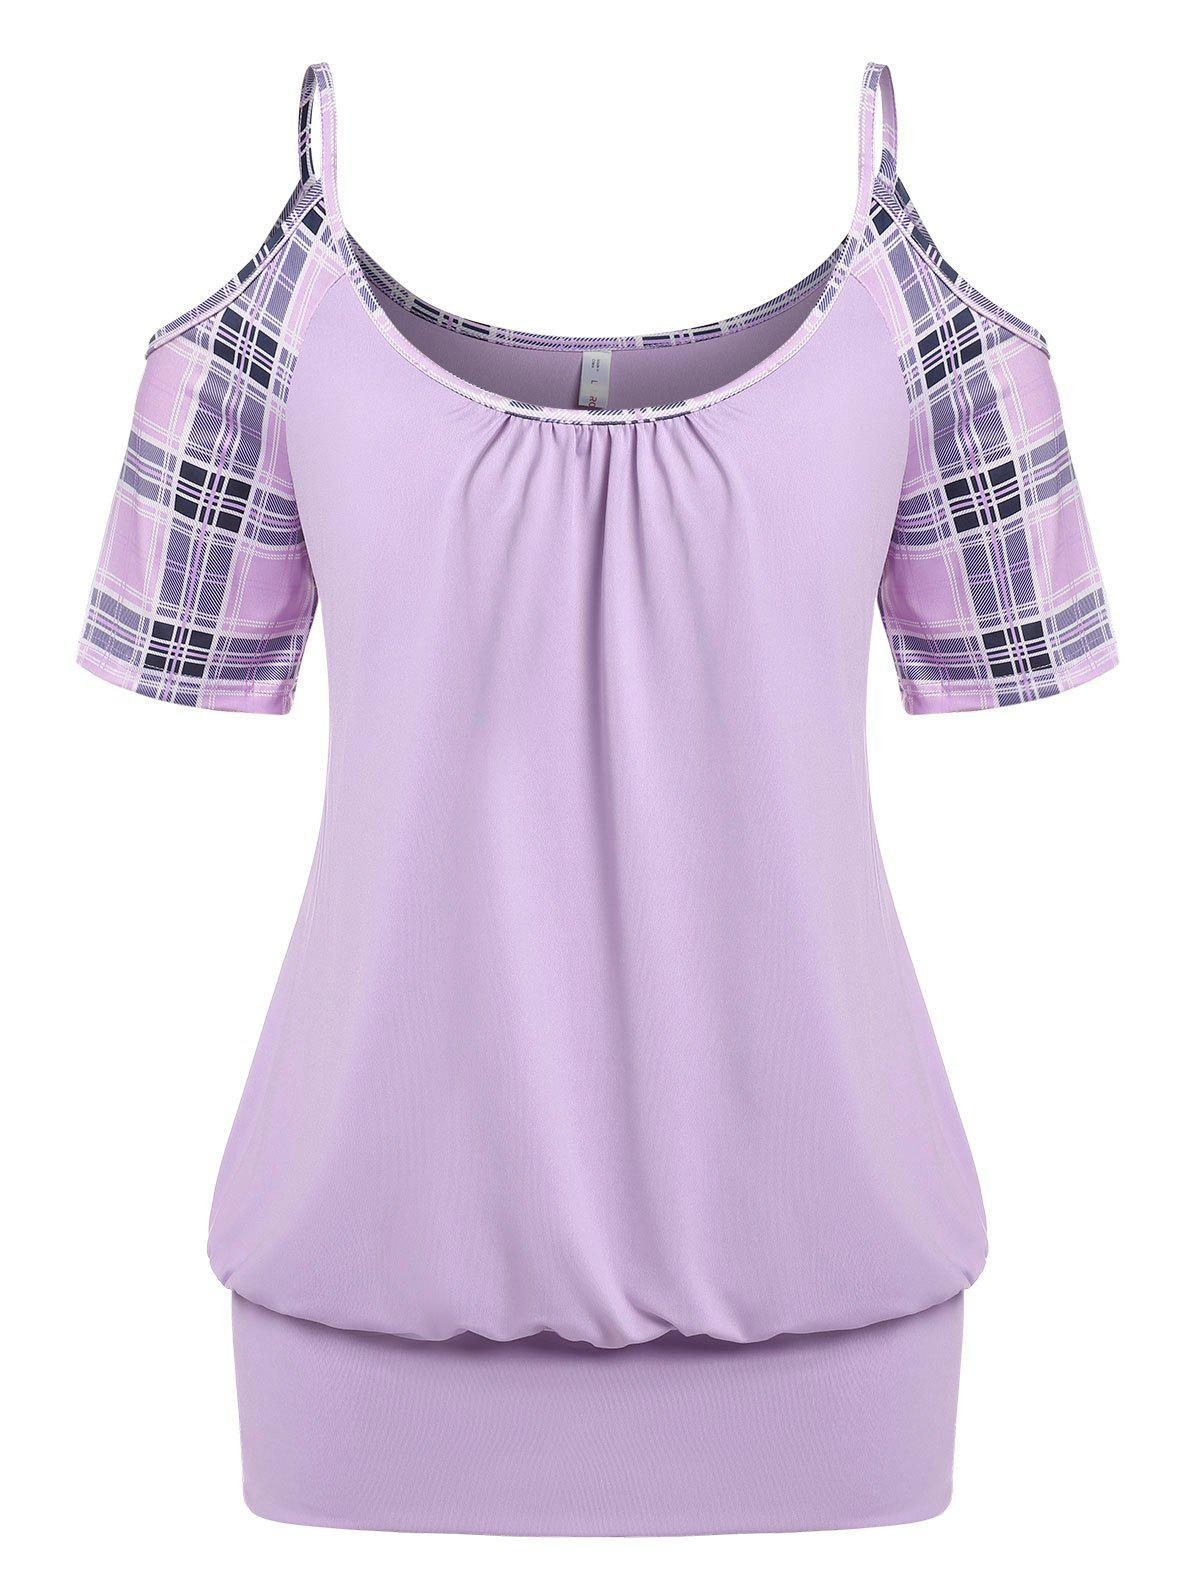 Plus Size Plaid Open Shoulder Blouson T-shirt - LIGHT PURPLE 5X